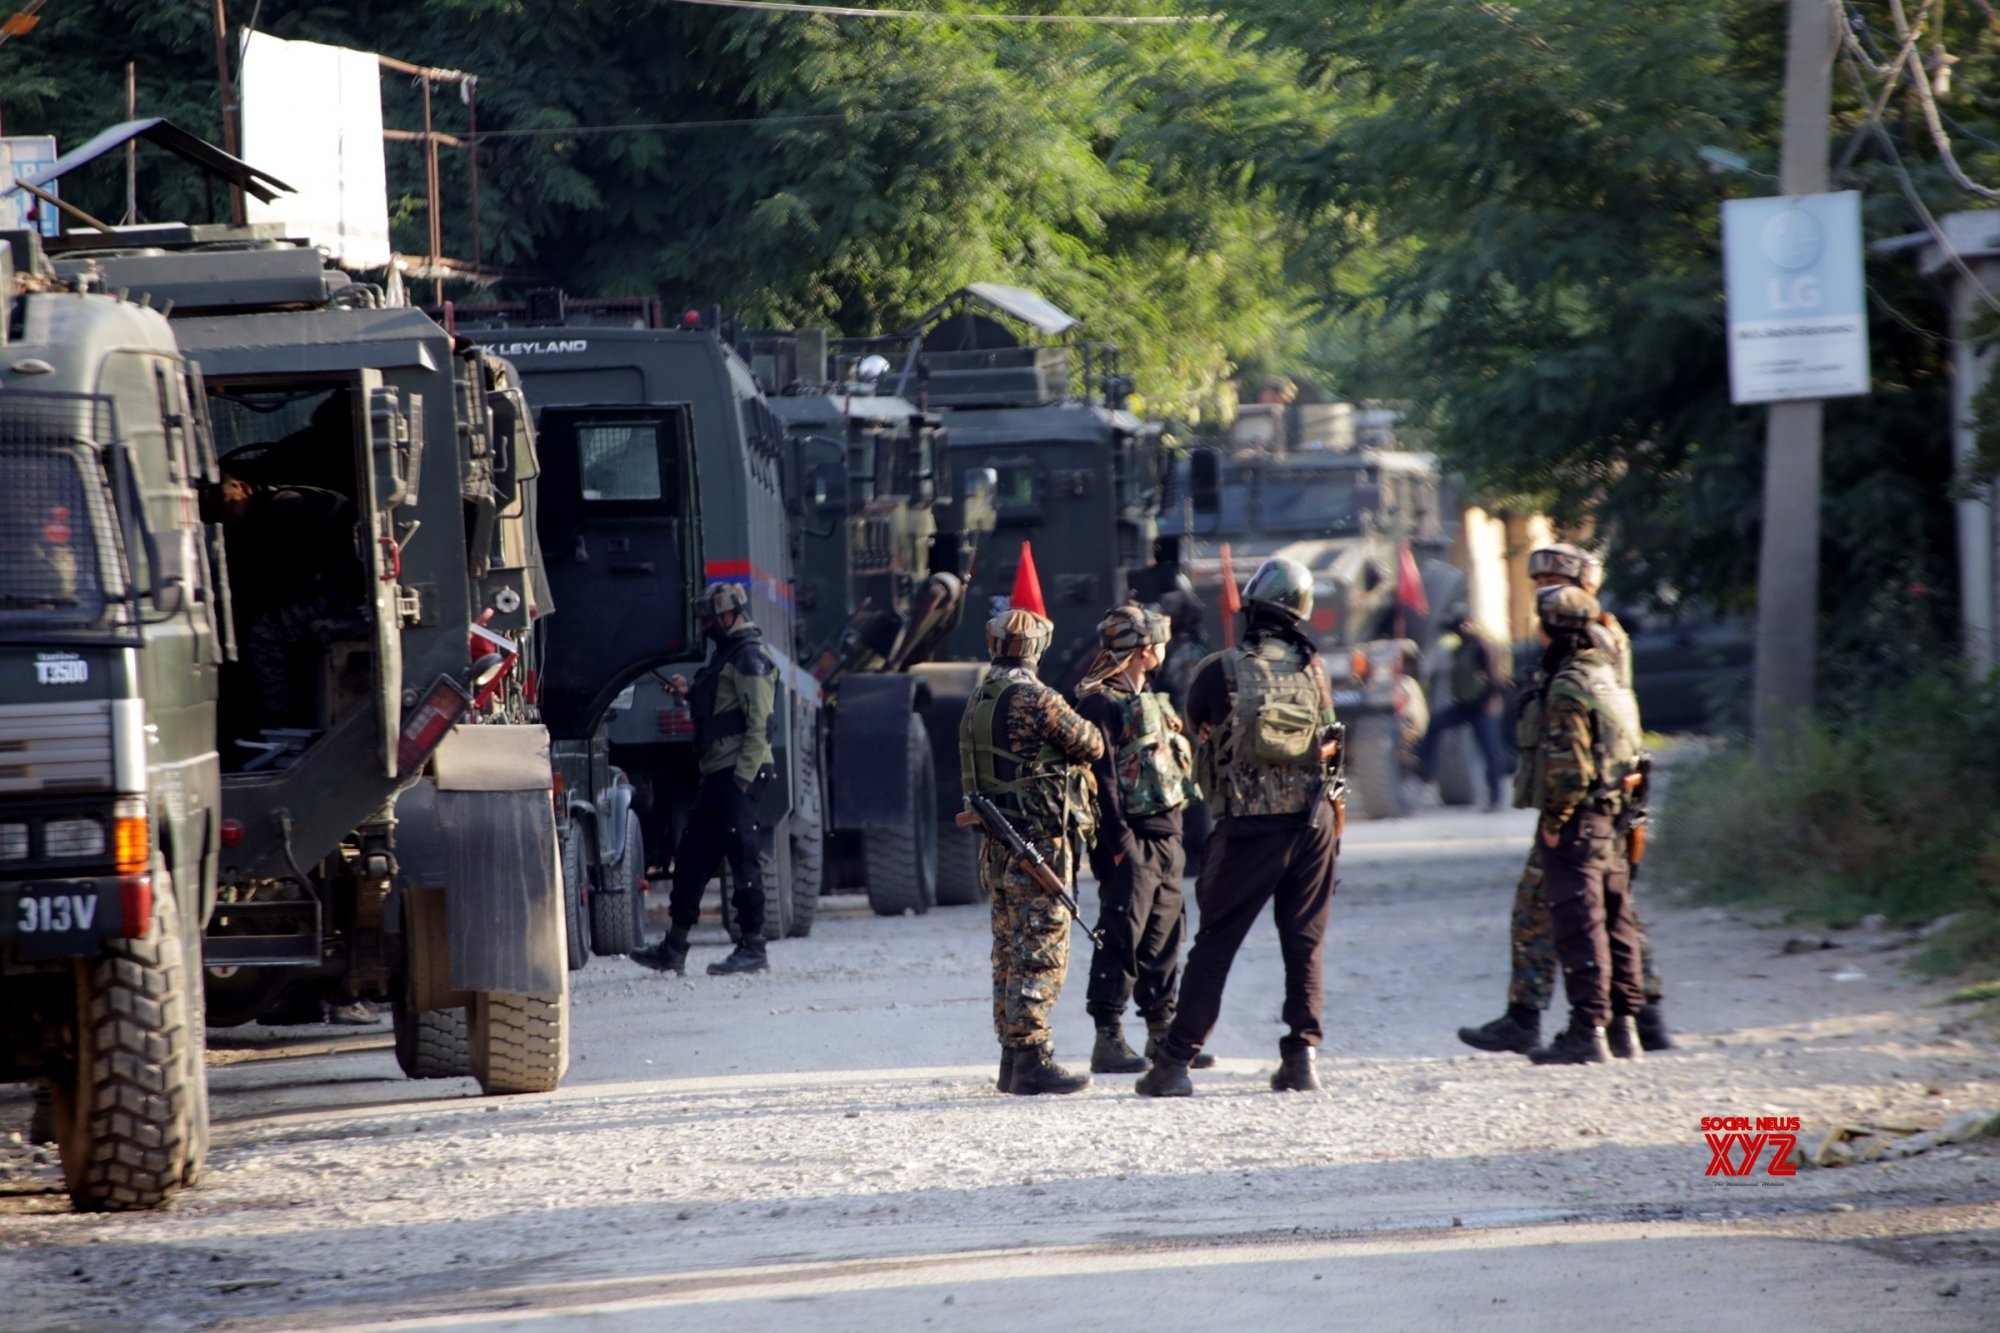 Tral: Major encounter underway at Tral in South Kashmir #Gallery